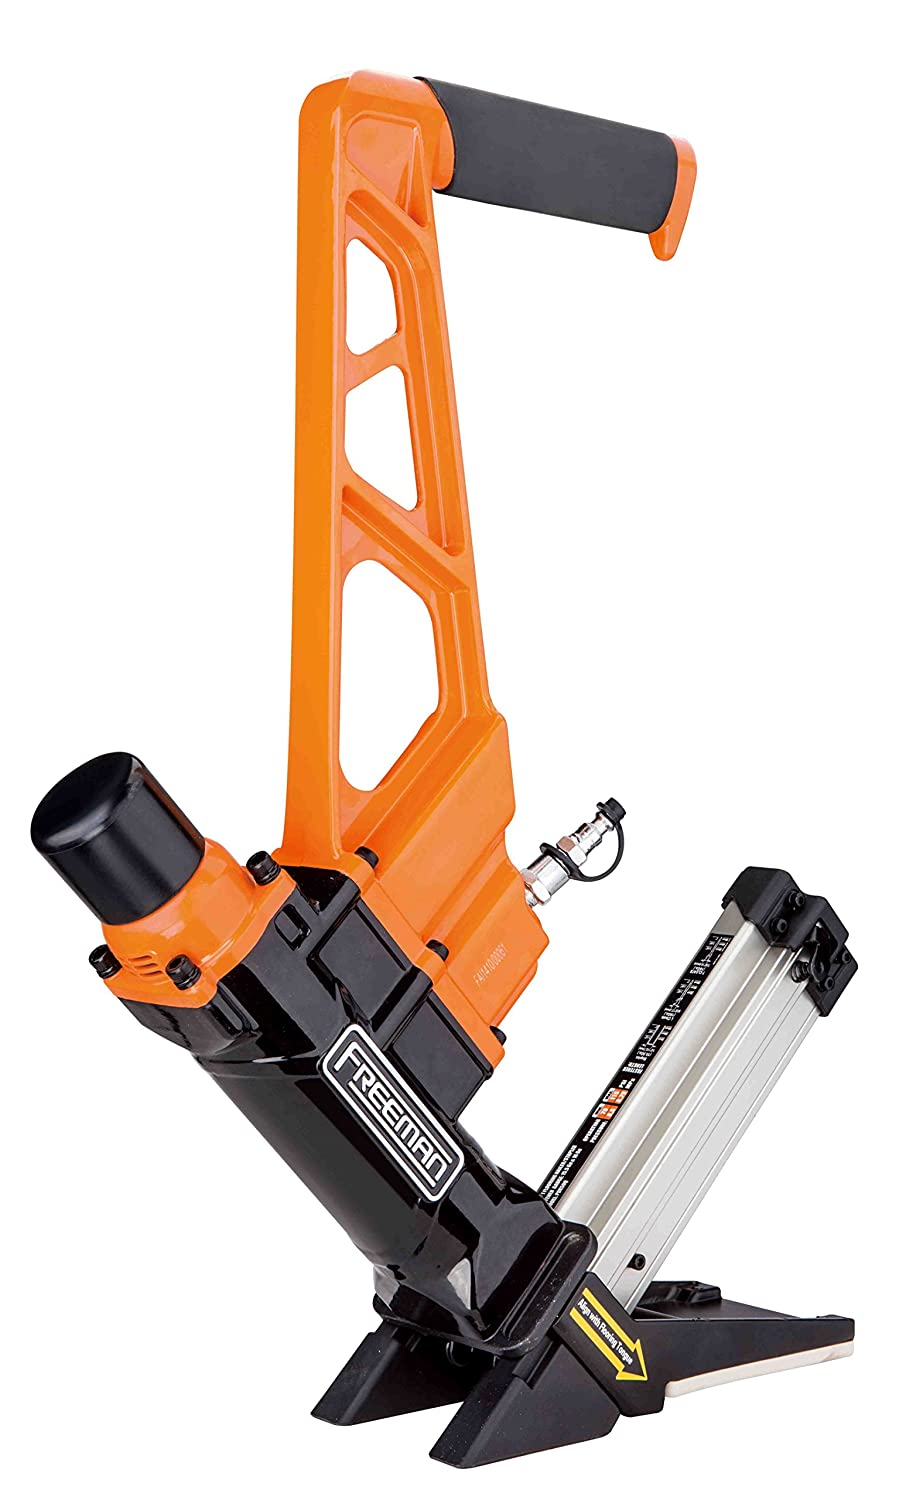 Freeman PDX50Q 3-in-1 Flooring Nailer and Stapler the first industrial with quick release by Freeman  B014HY0CI4